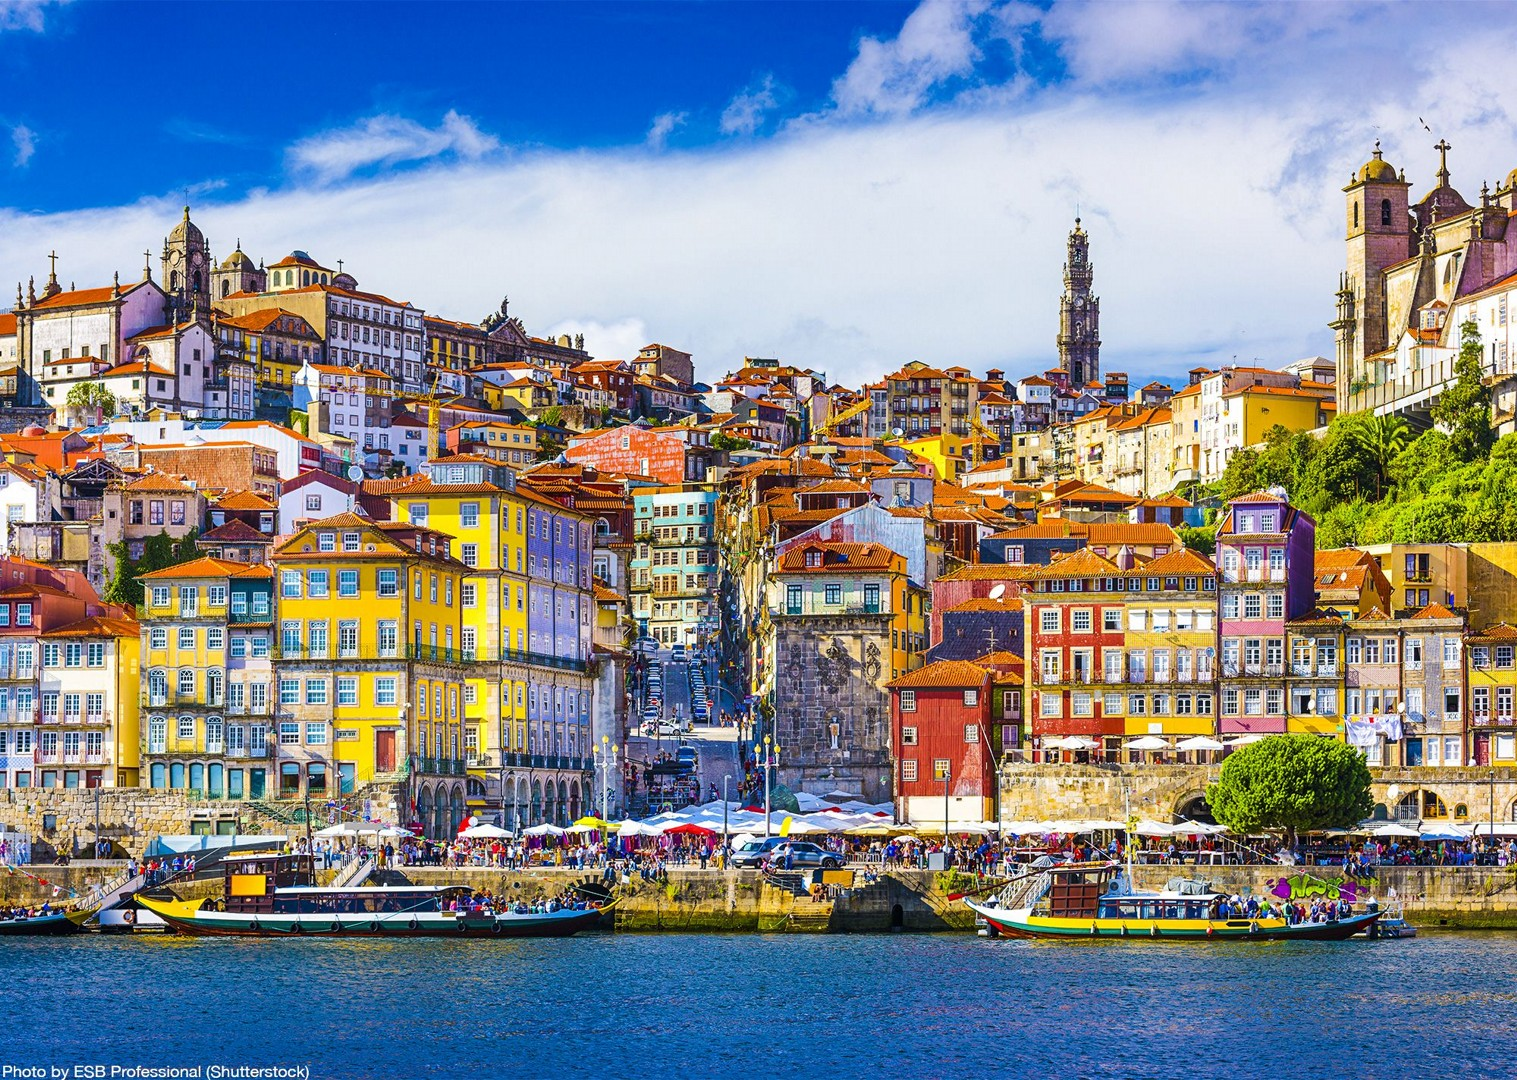 porto-visit-by-bike-accommodation-included-tour-saddle-skedaddle.jpg - Portugal - Port and Wine - Guided Leisure Cycling Holiday - Leisure Cycling